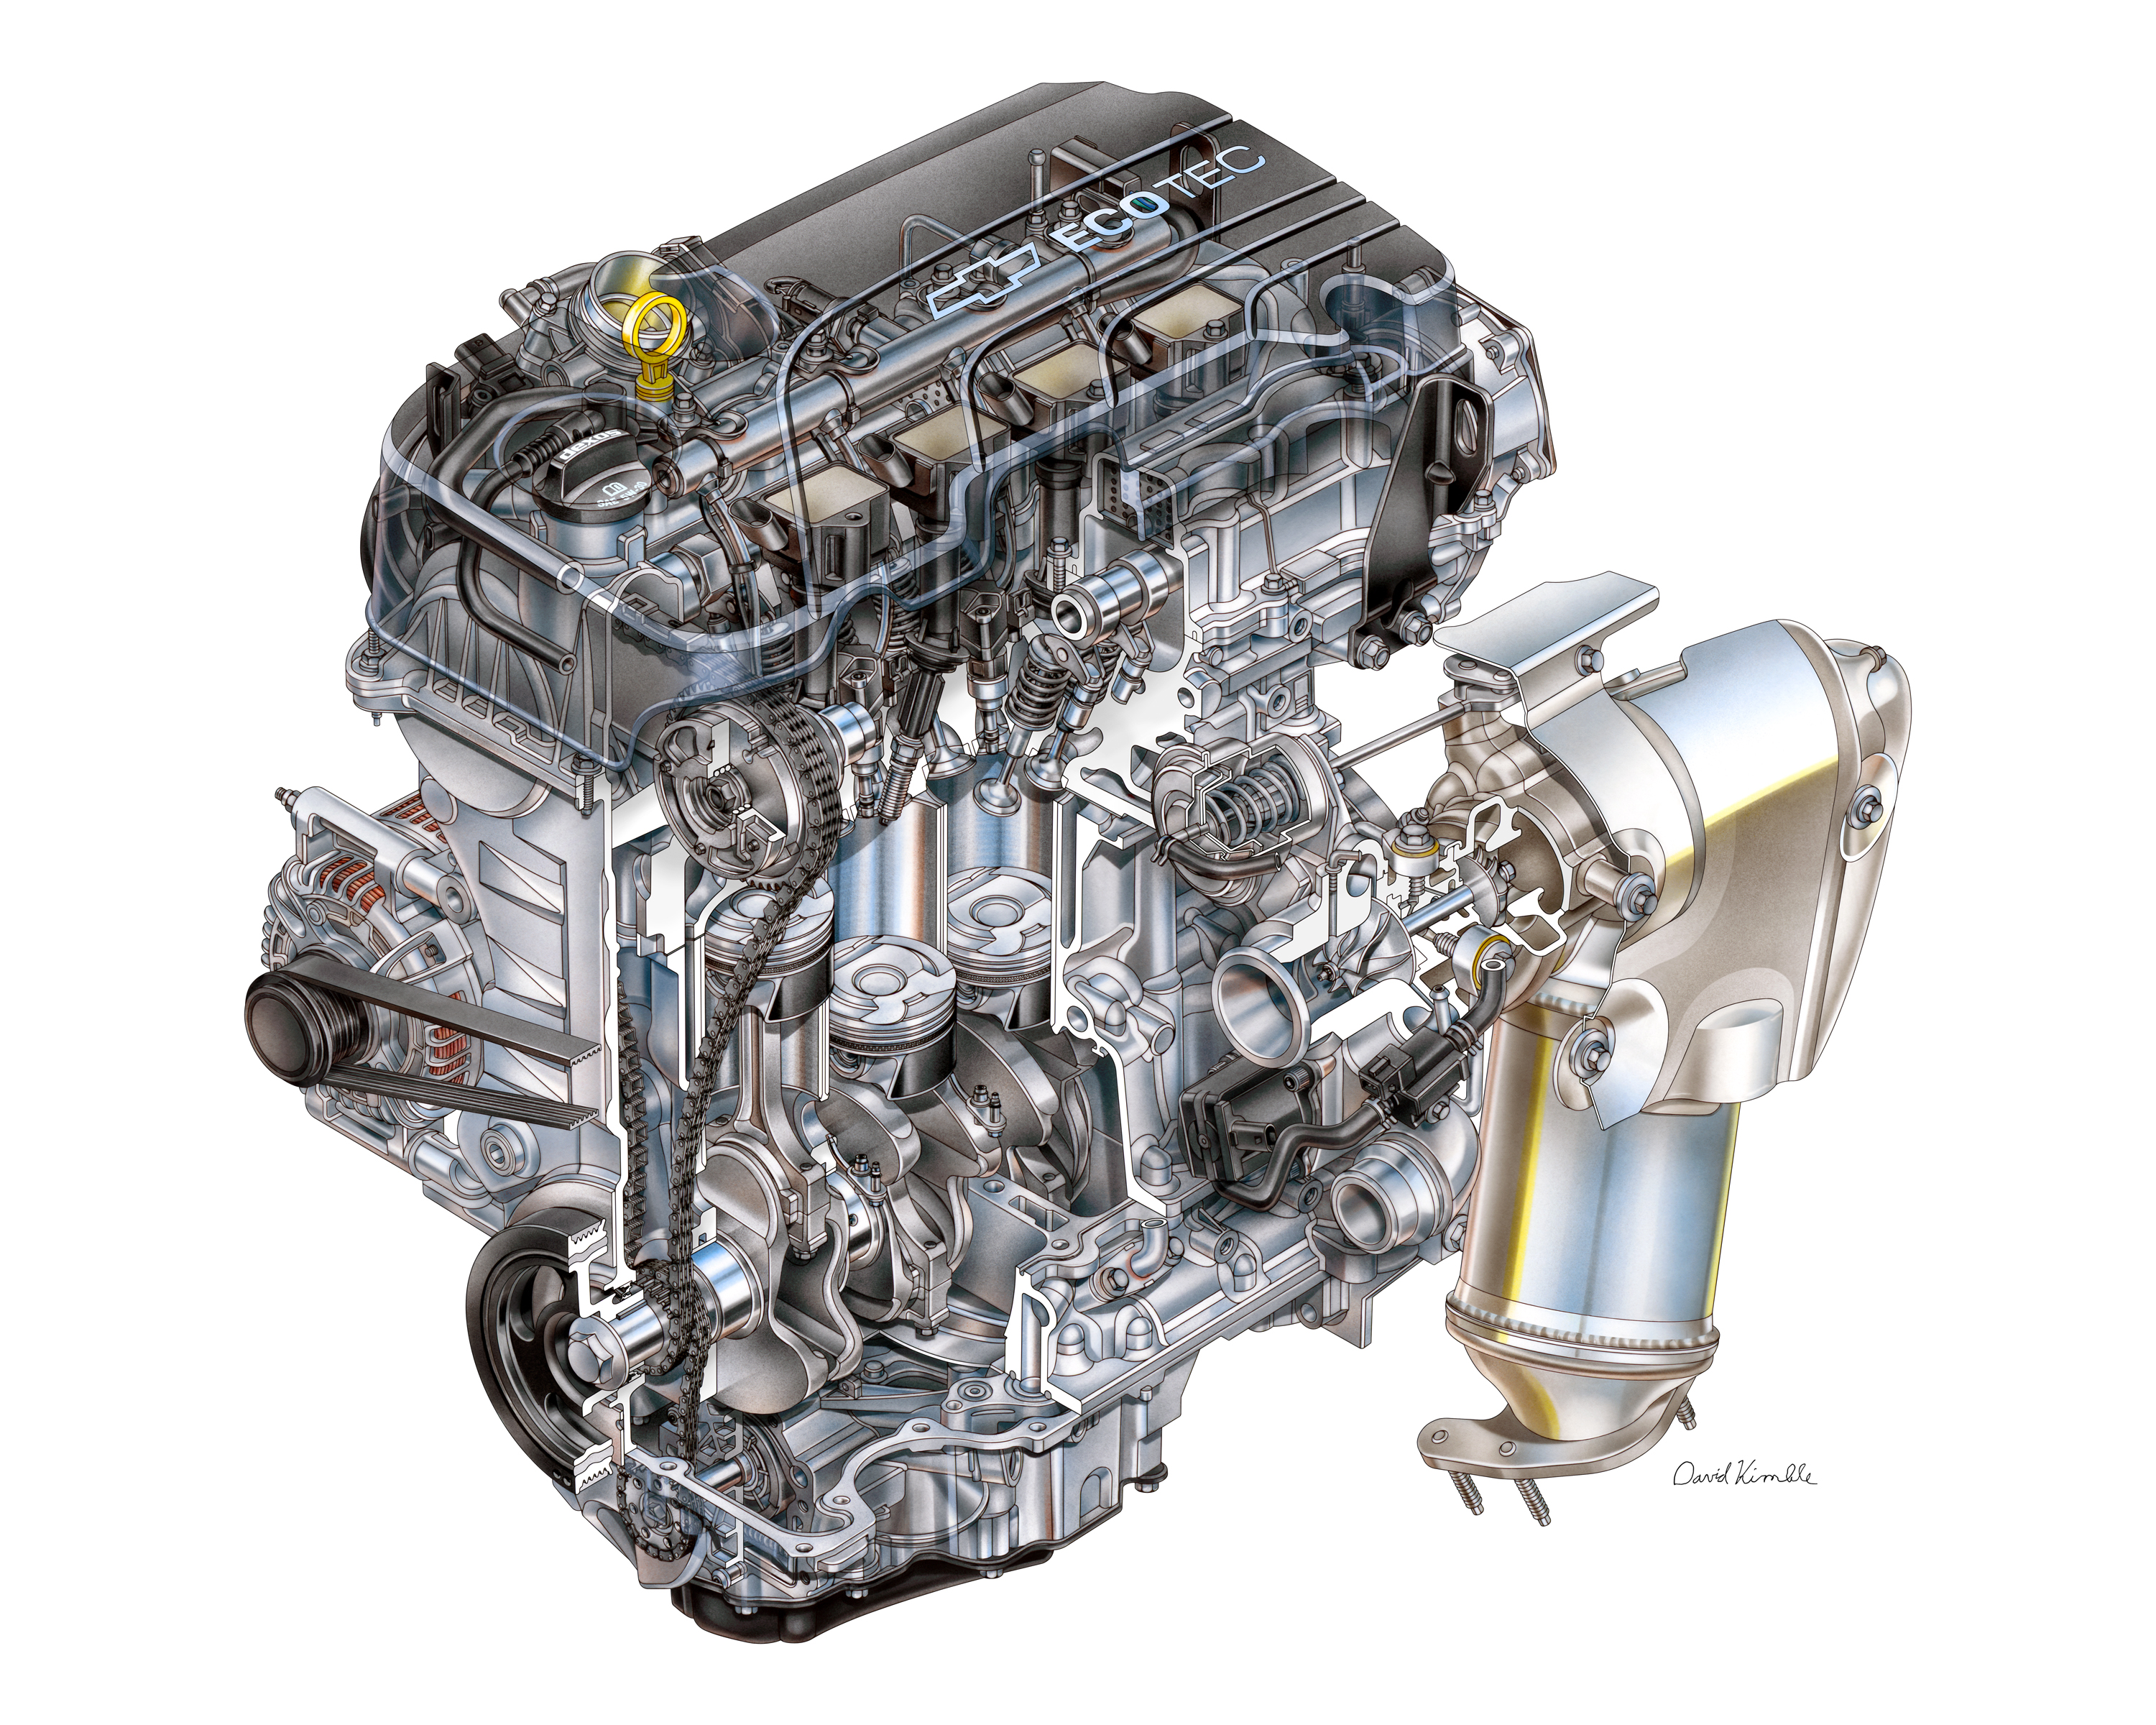 Chevrolet Pressroom Canada Images 2009 Silverado With Afm Engine Diagram